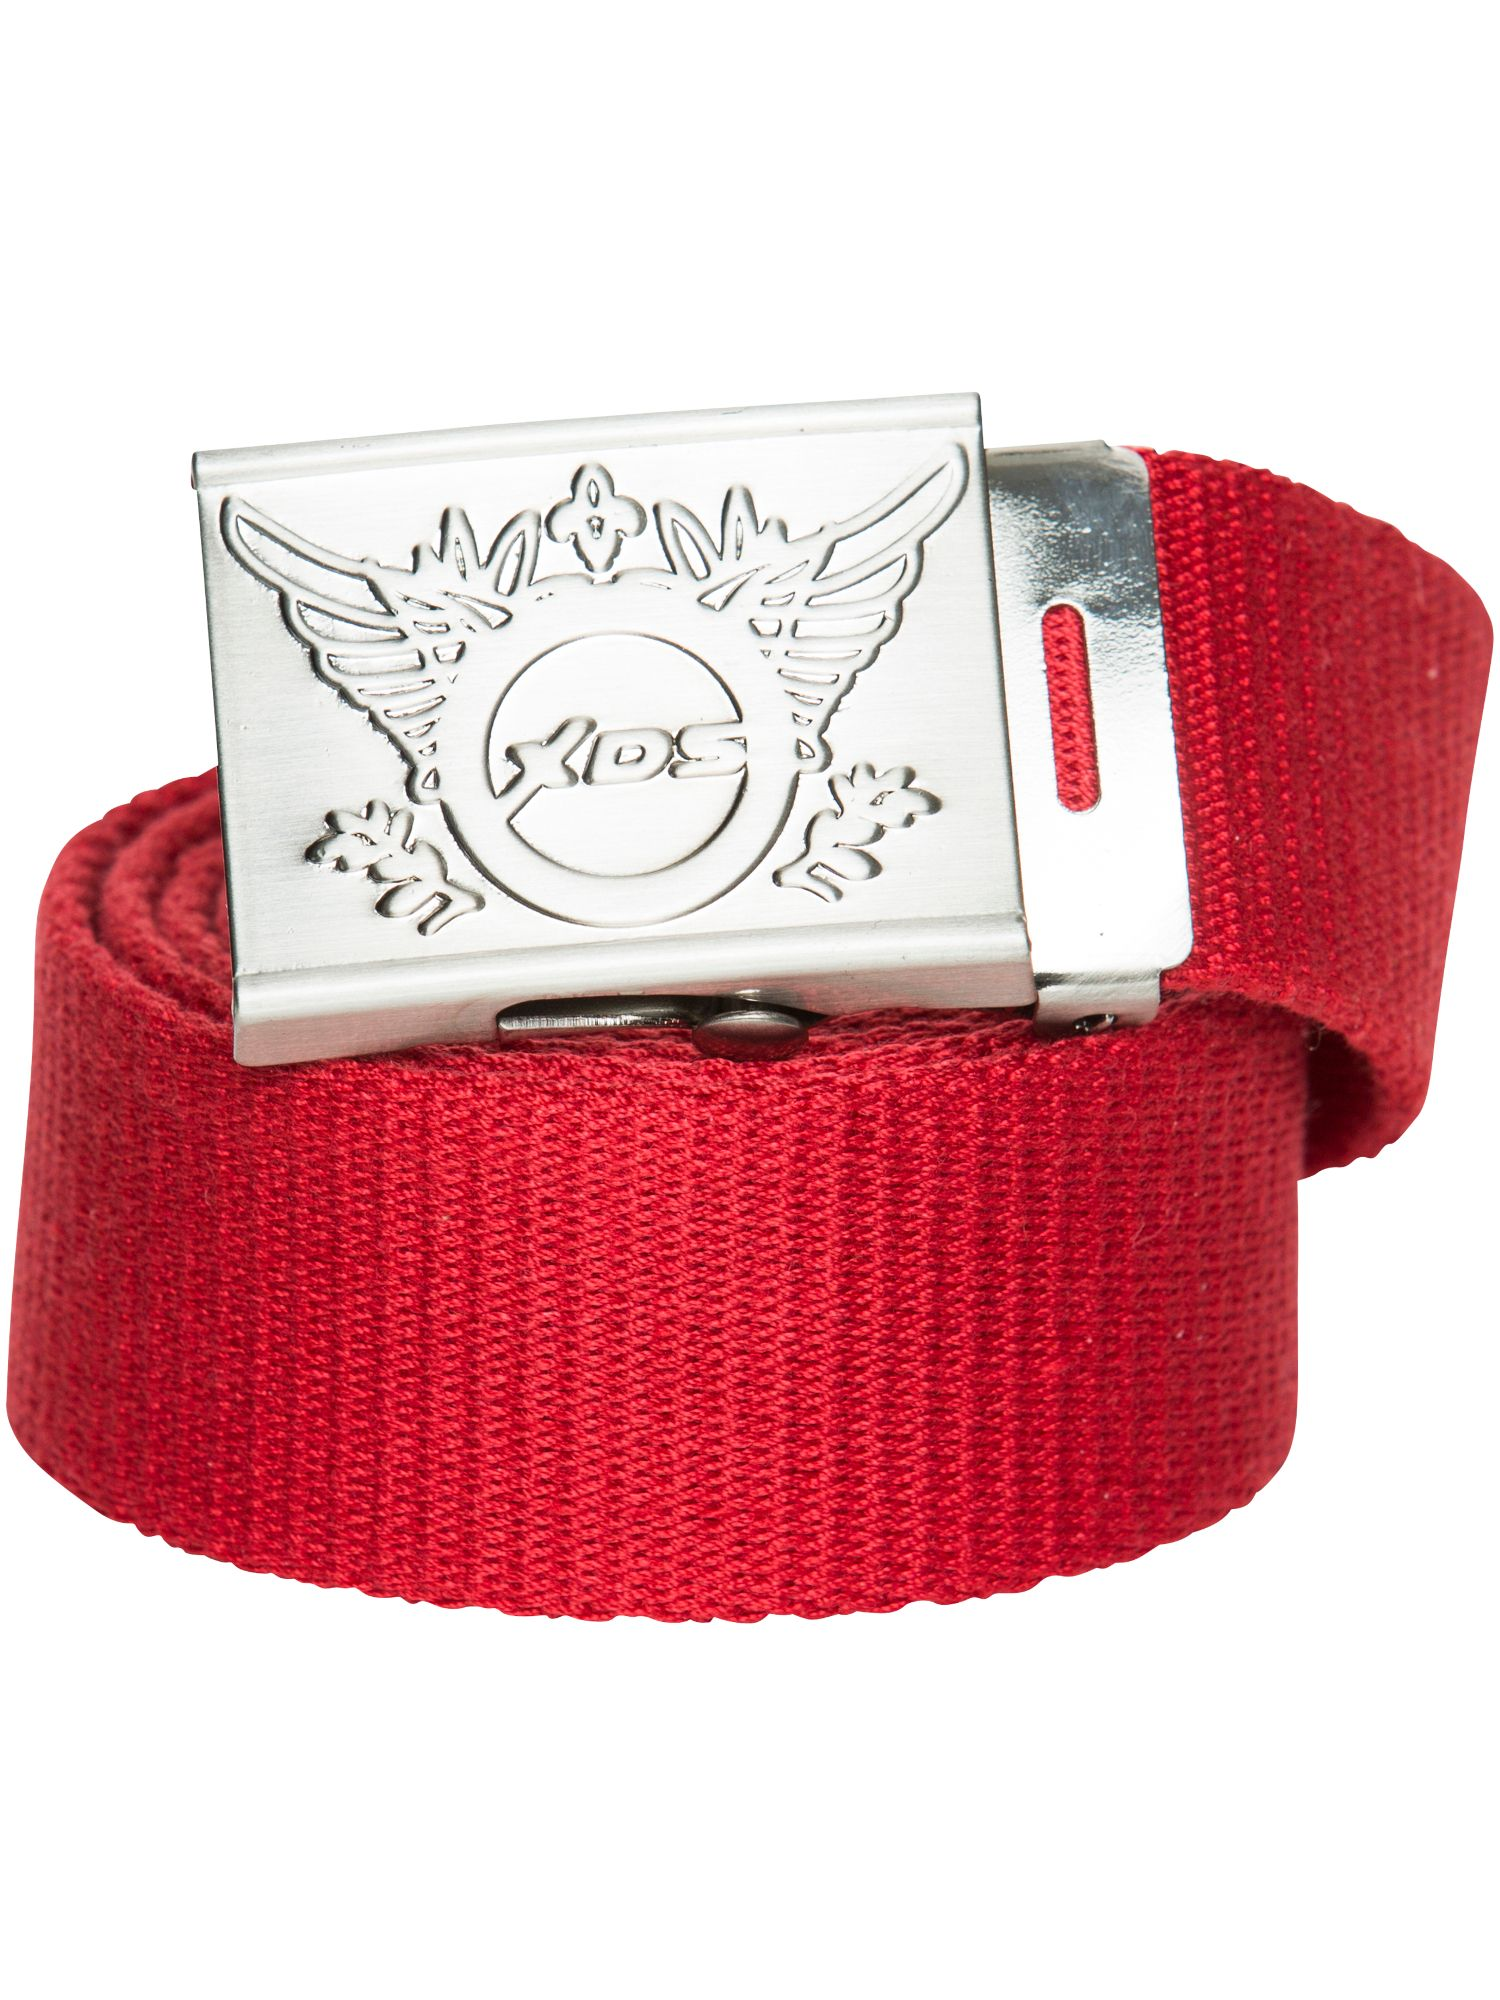 Daily Sports Daily Sports Sienna belt, Red